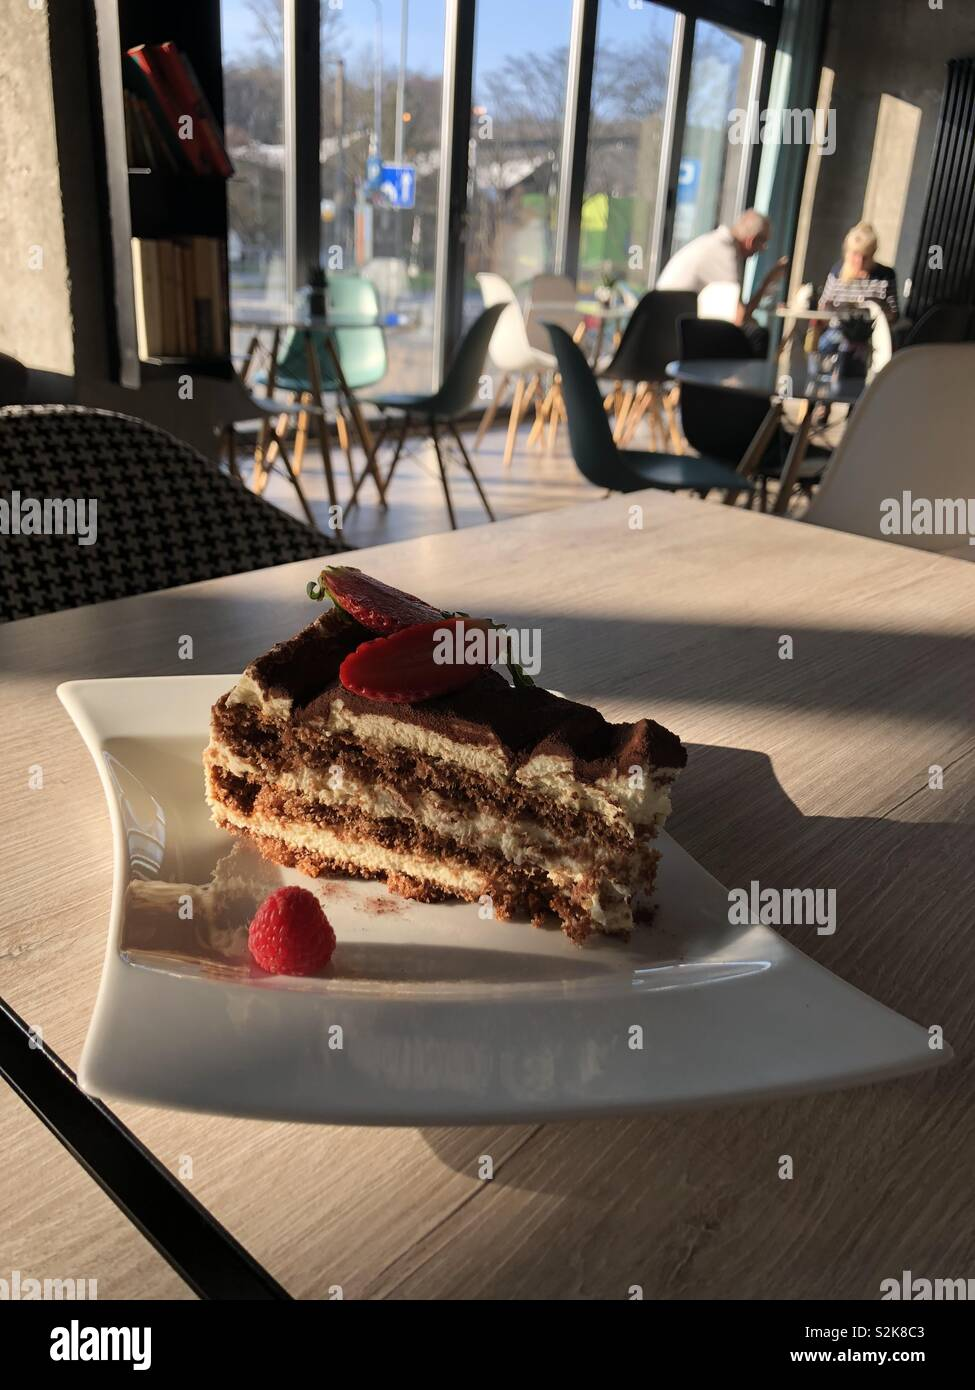 Freetime at cafe with a piece of tiramisu. - Stock Image